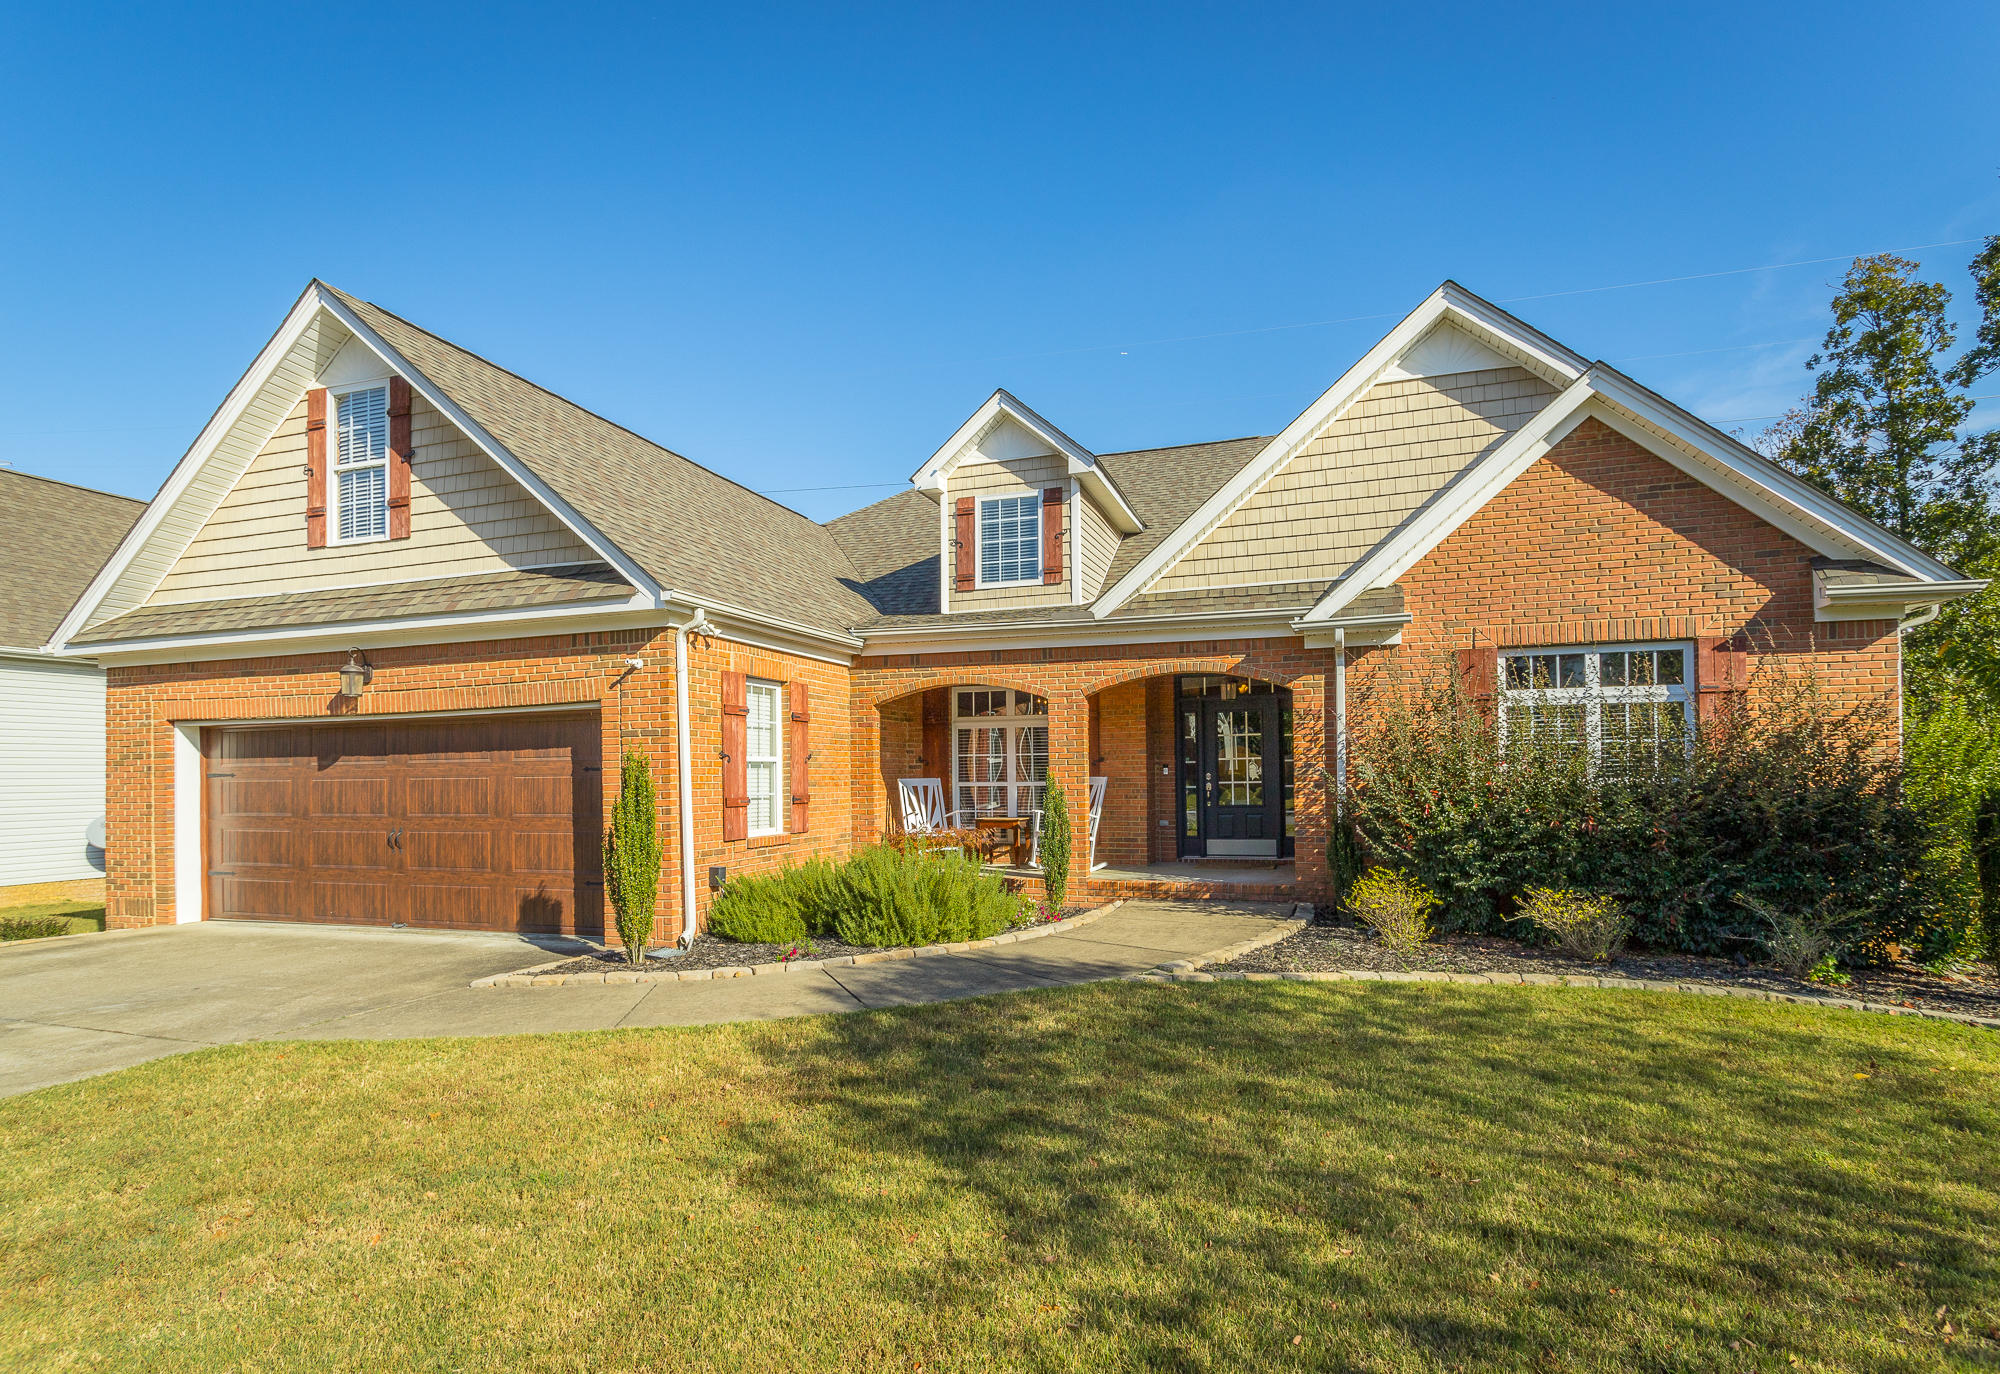 2365  Sargent Daly  Dr 37421 - One of Chattanooga Homes for Sale